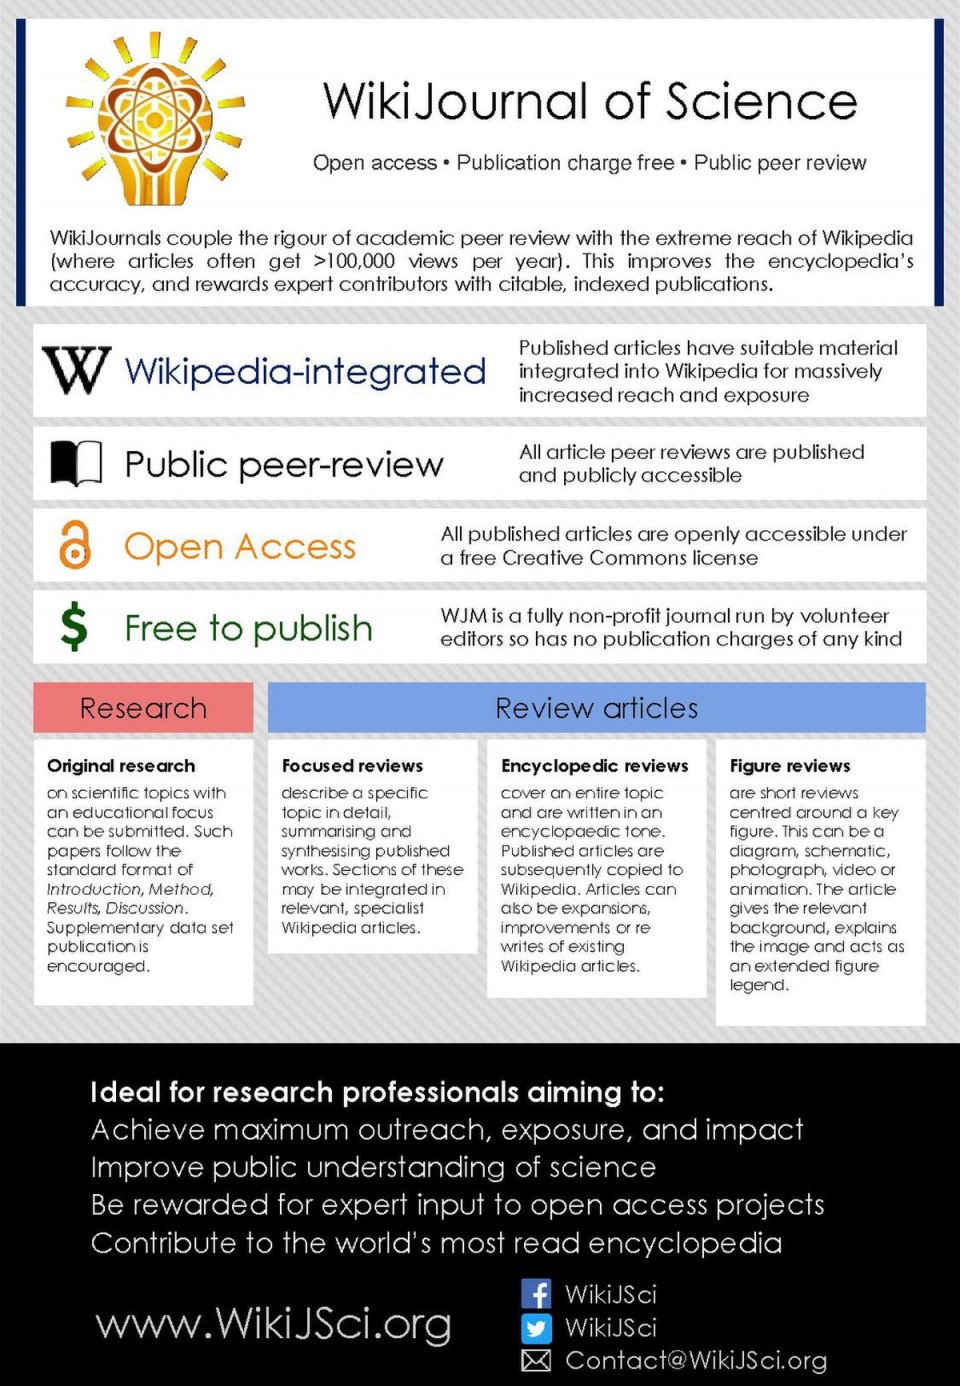 026 Page1 1200px Wikijournal Of Science Poster Pdf Research Paper Data Sensational Papers 2018 960